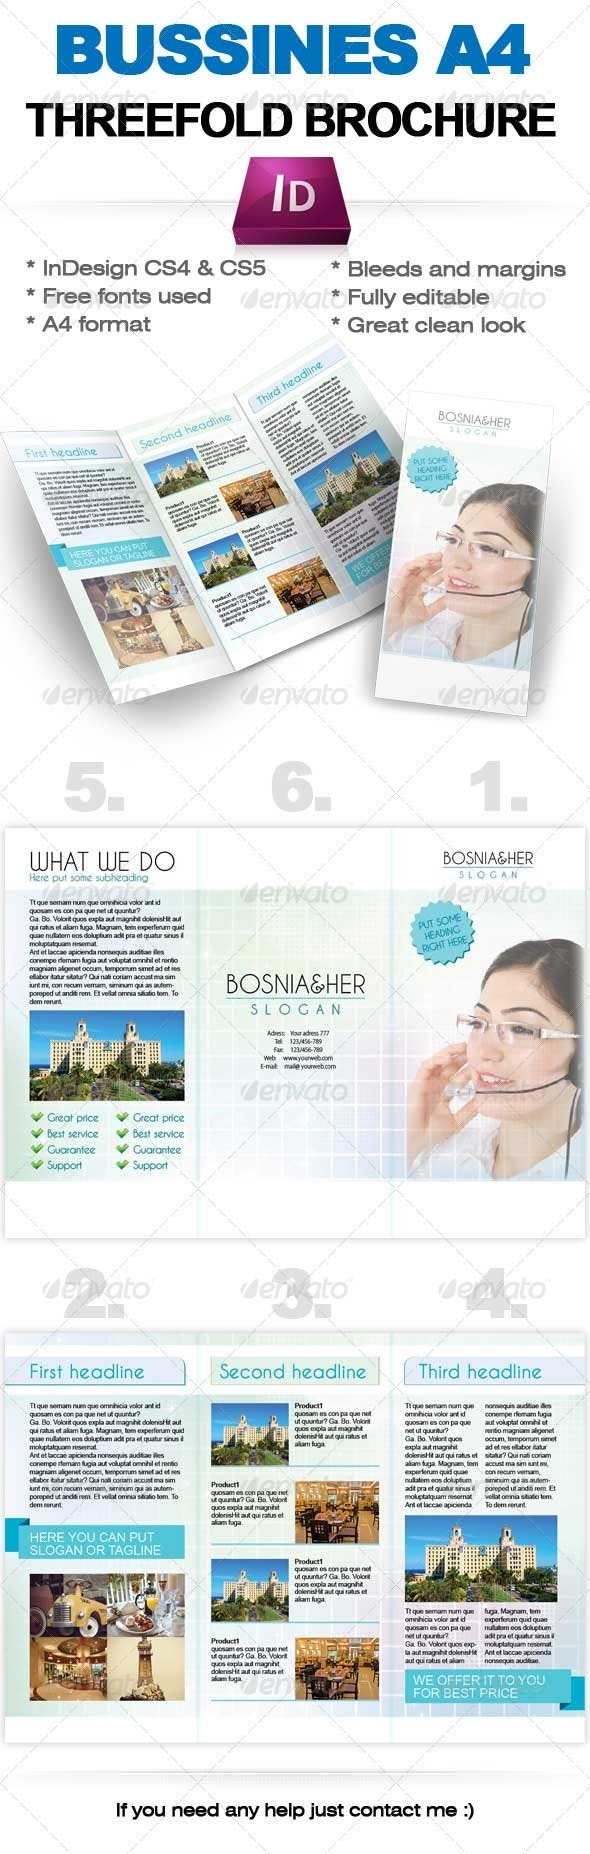 Business threefold brochure Indesign A4 temaplate - Corporate Brochures